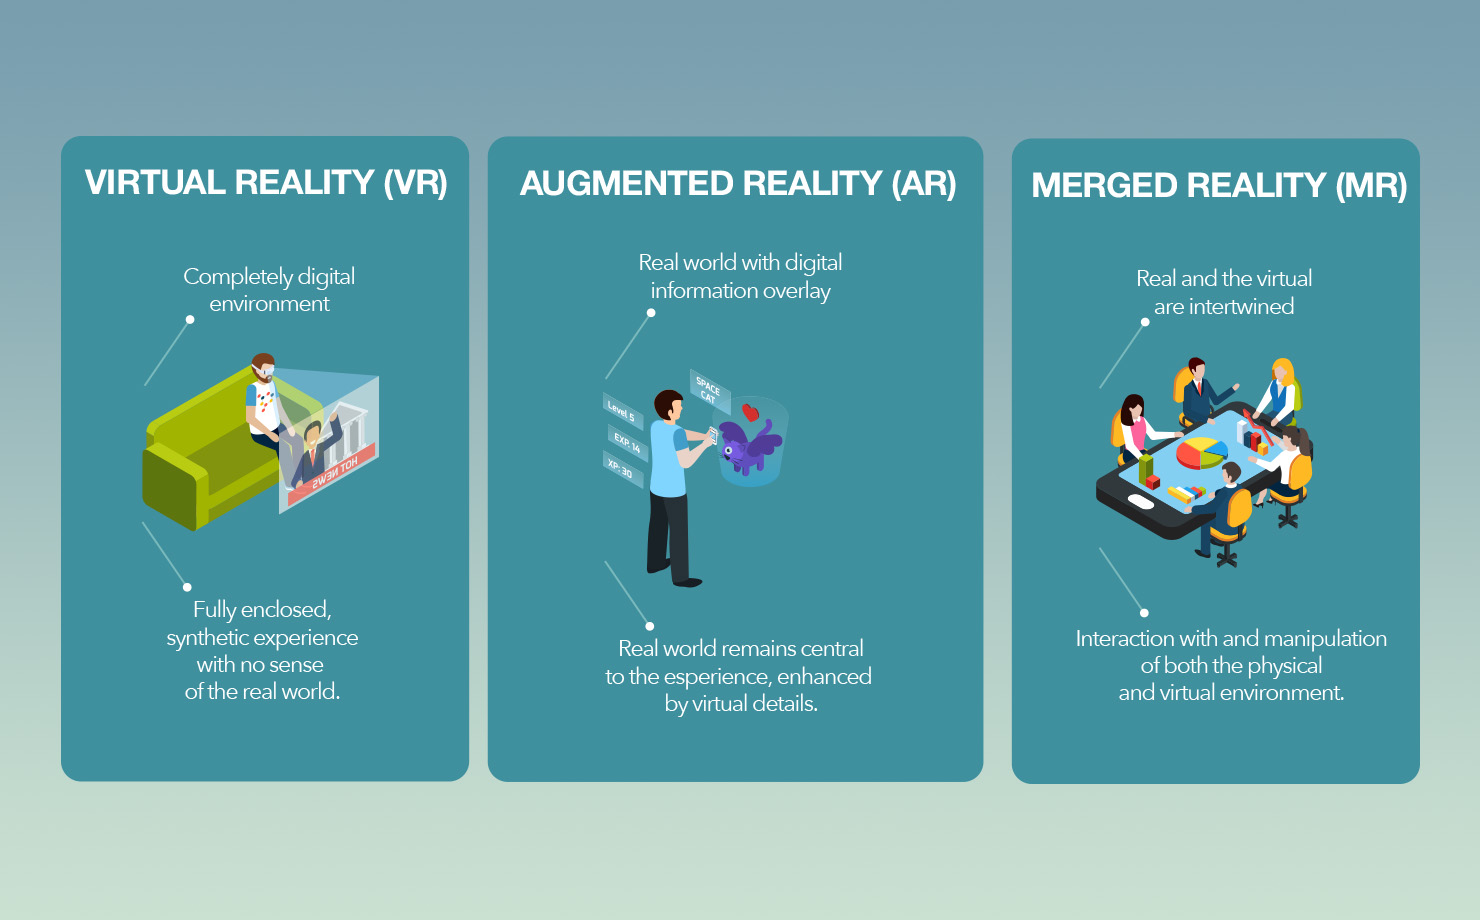 VR vs AR vs MR